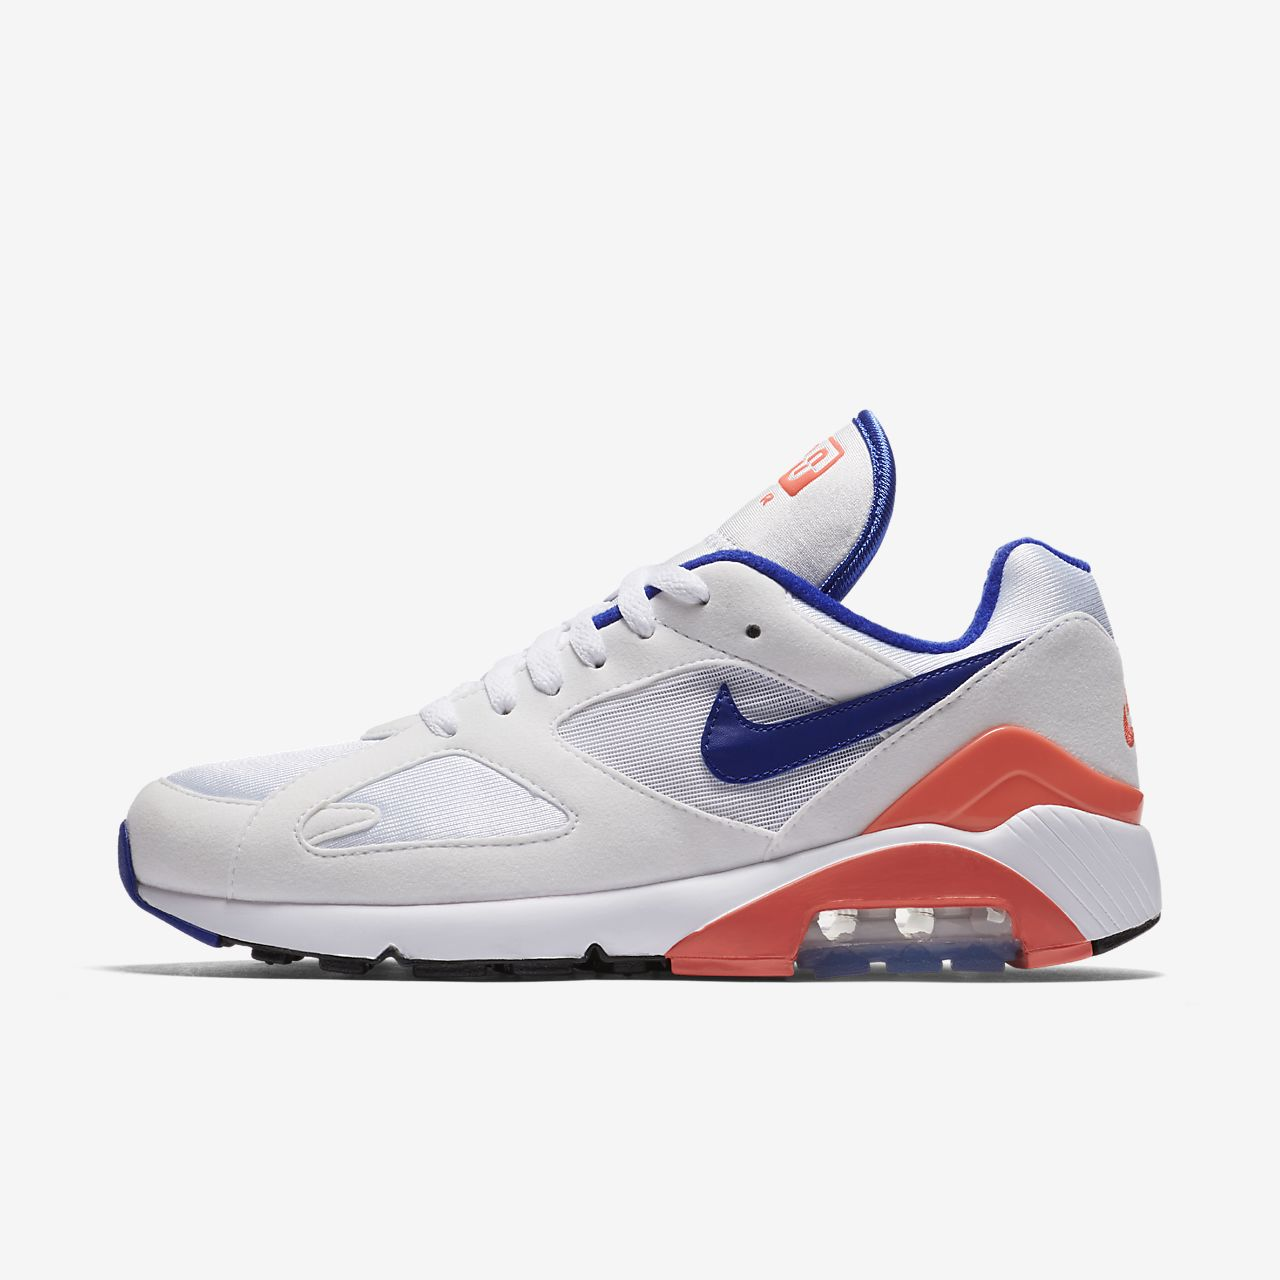 ... Nike Air Max 180 Women's Shoe